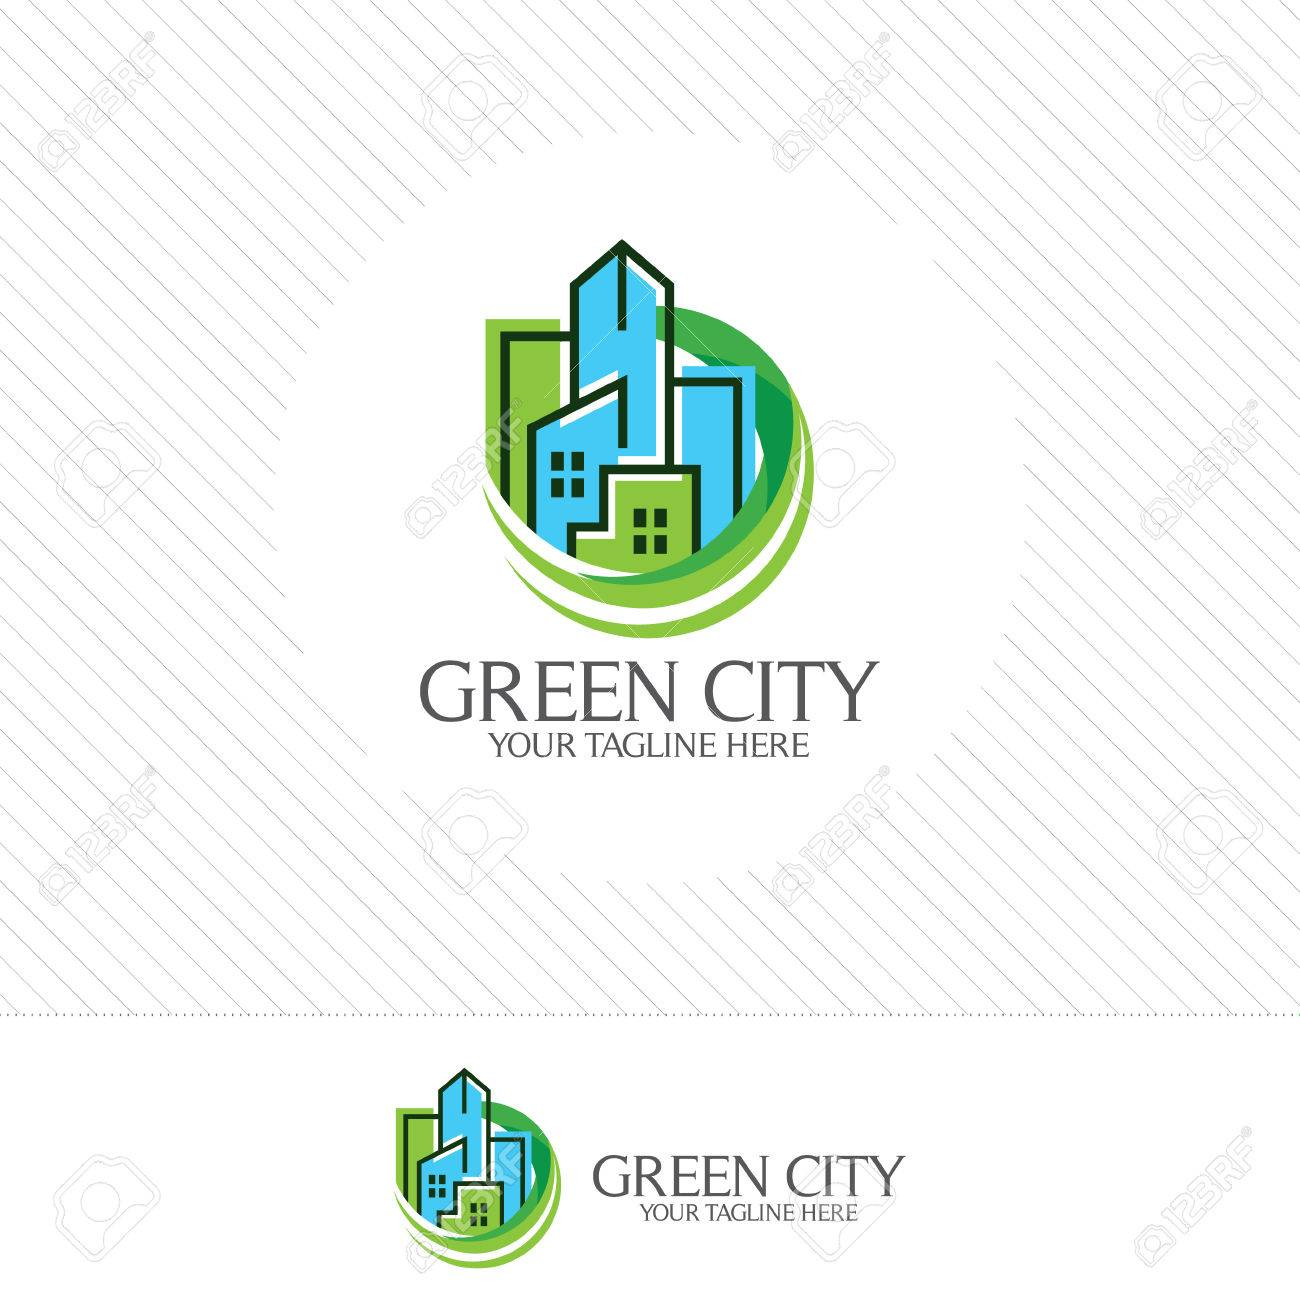 Green City Logo Design Vector Symbol Icon Of Residential Apartment Royalty Free Cliparts Vectors And Stock Illustration Image 69146130